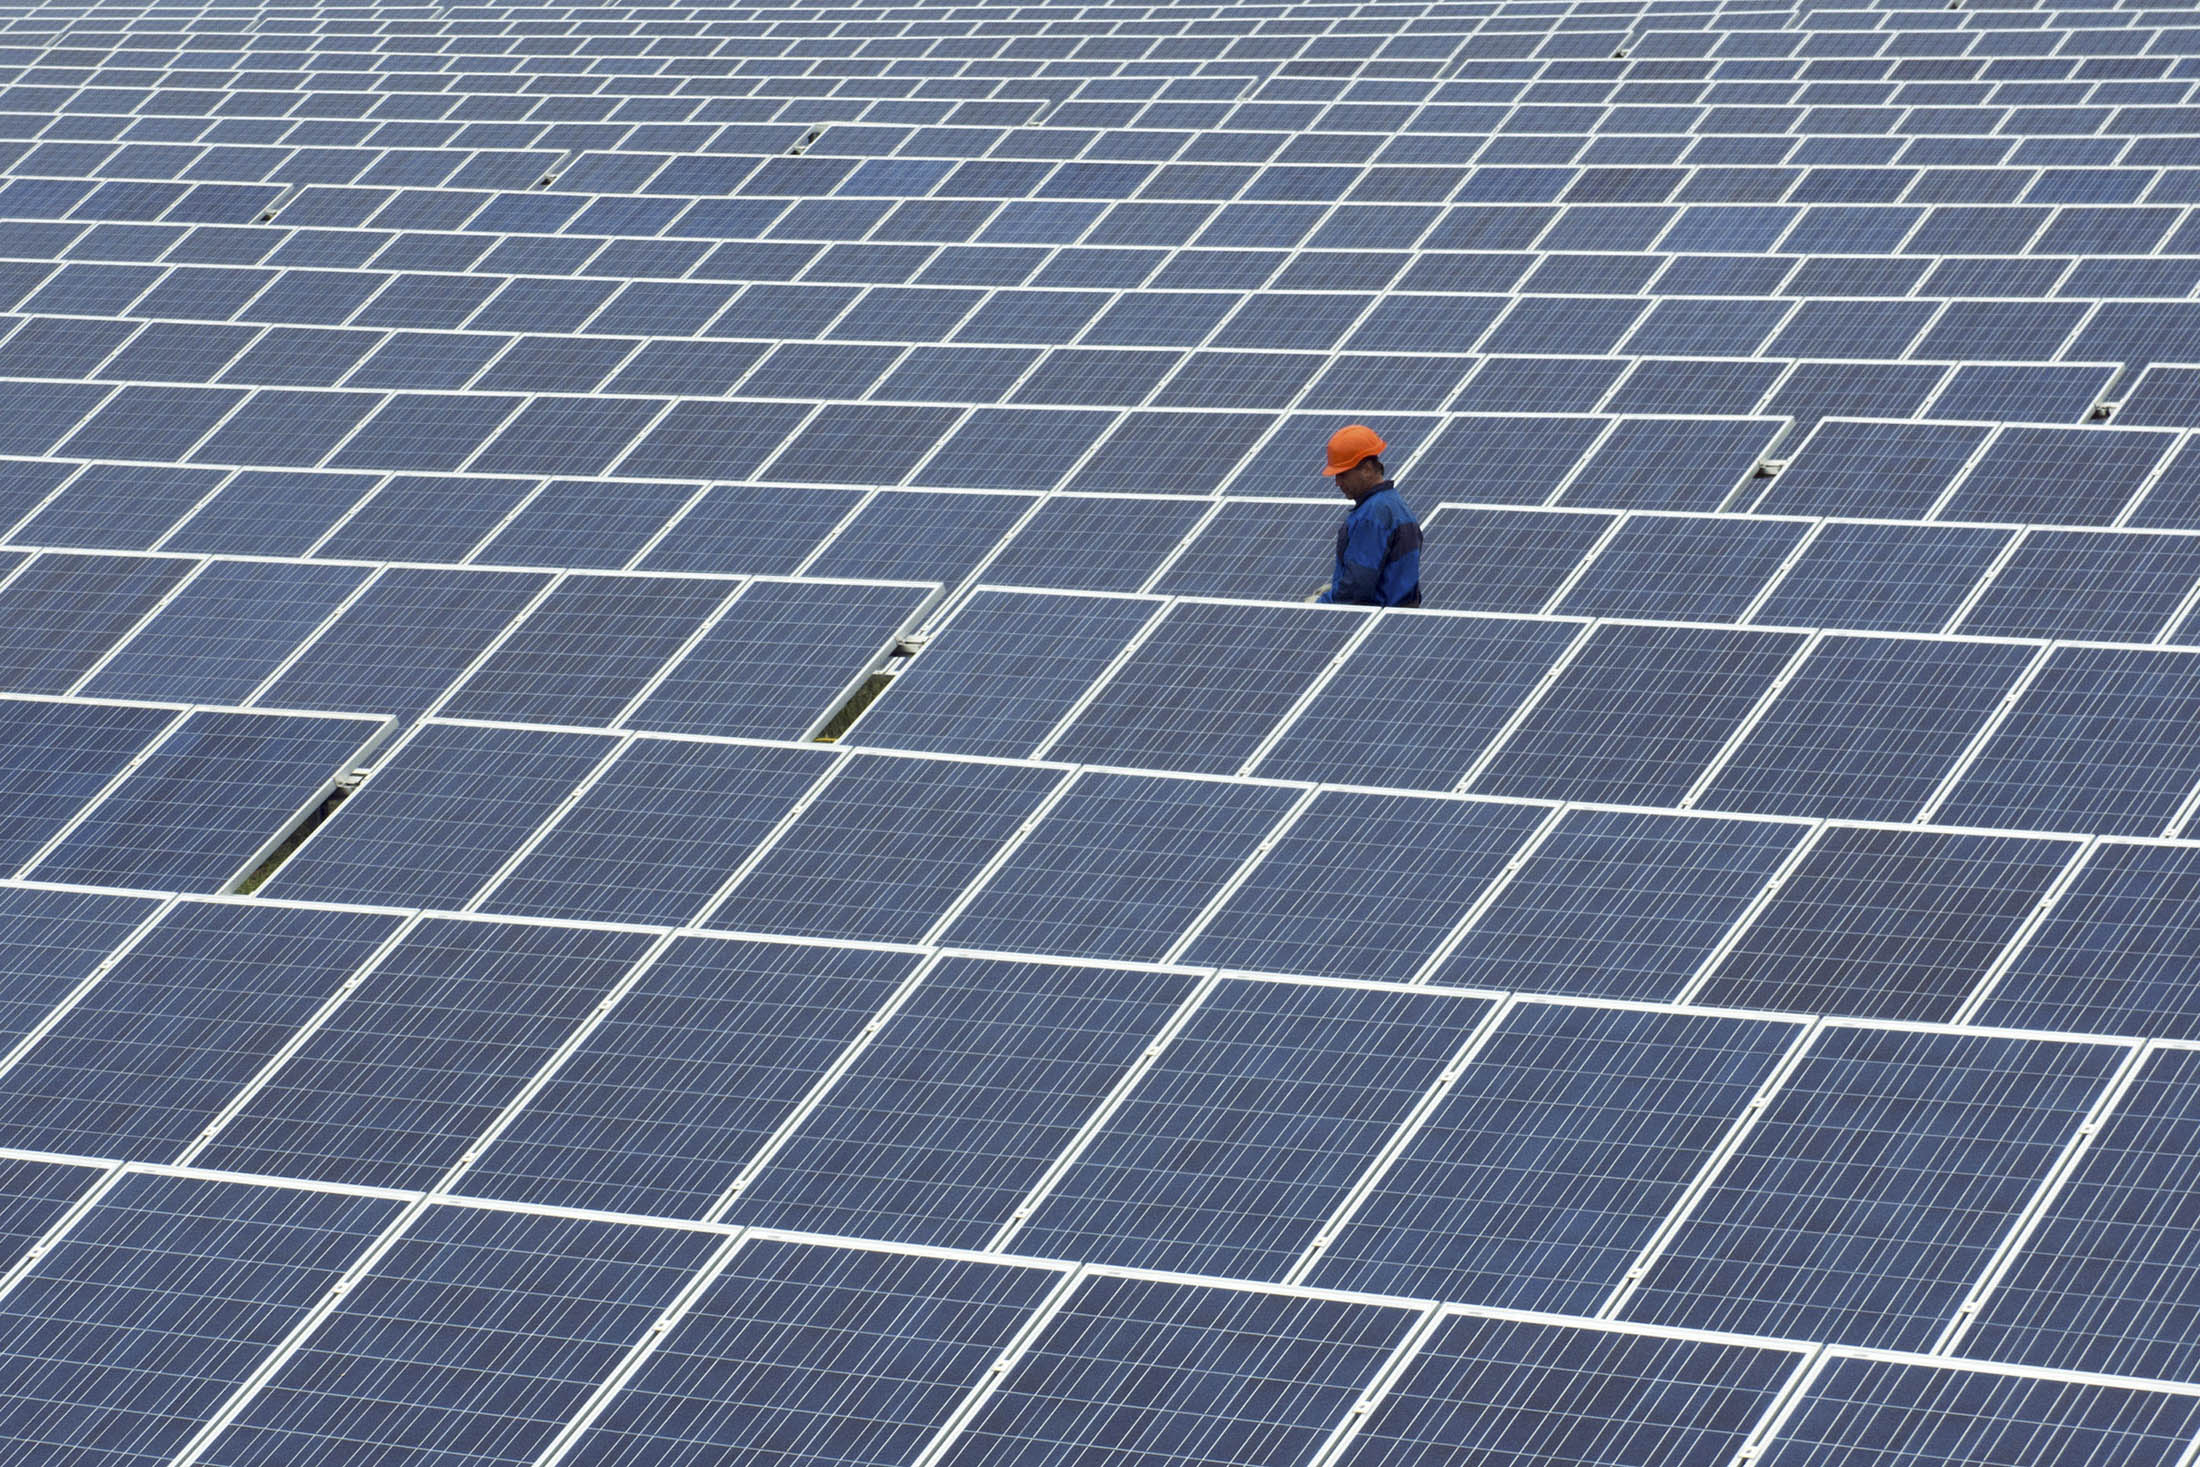 This is the Solar Hot Spot